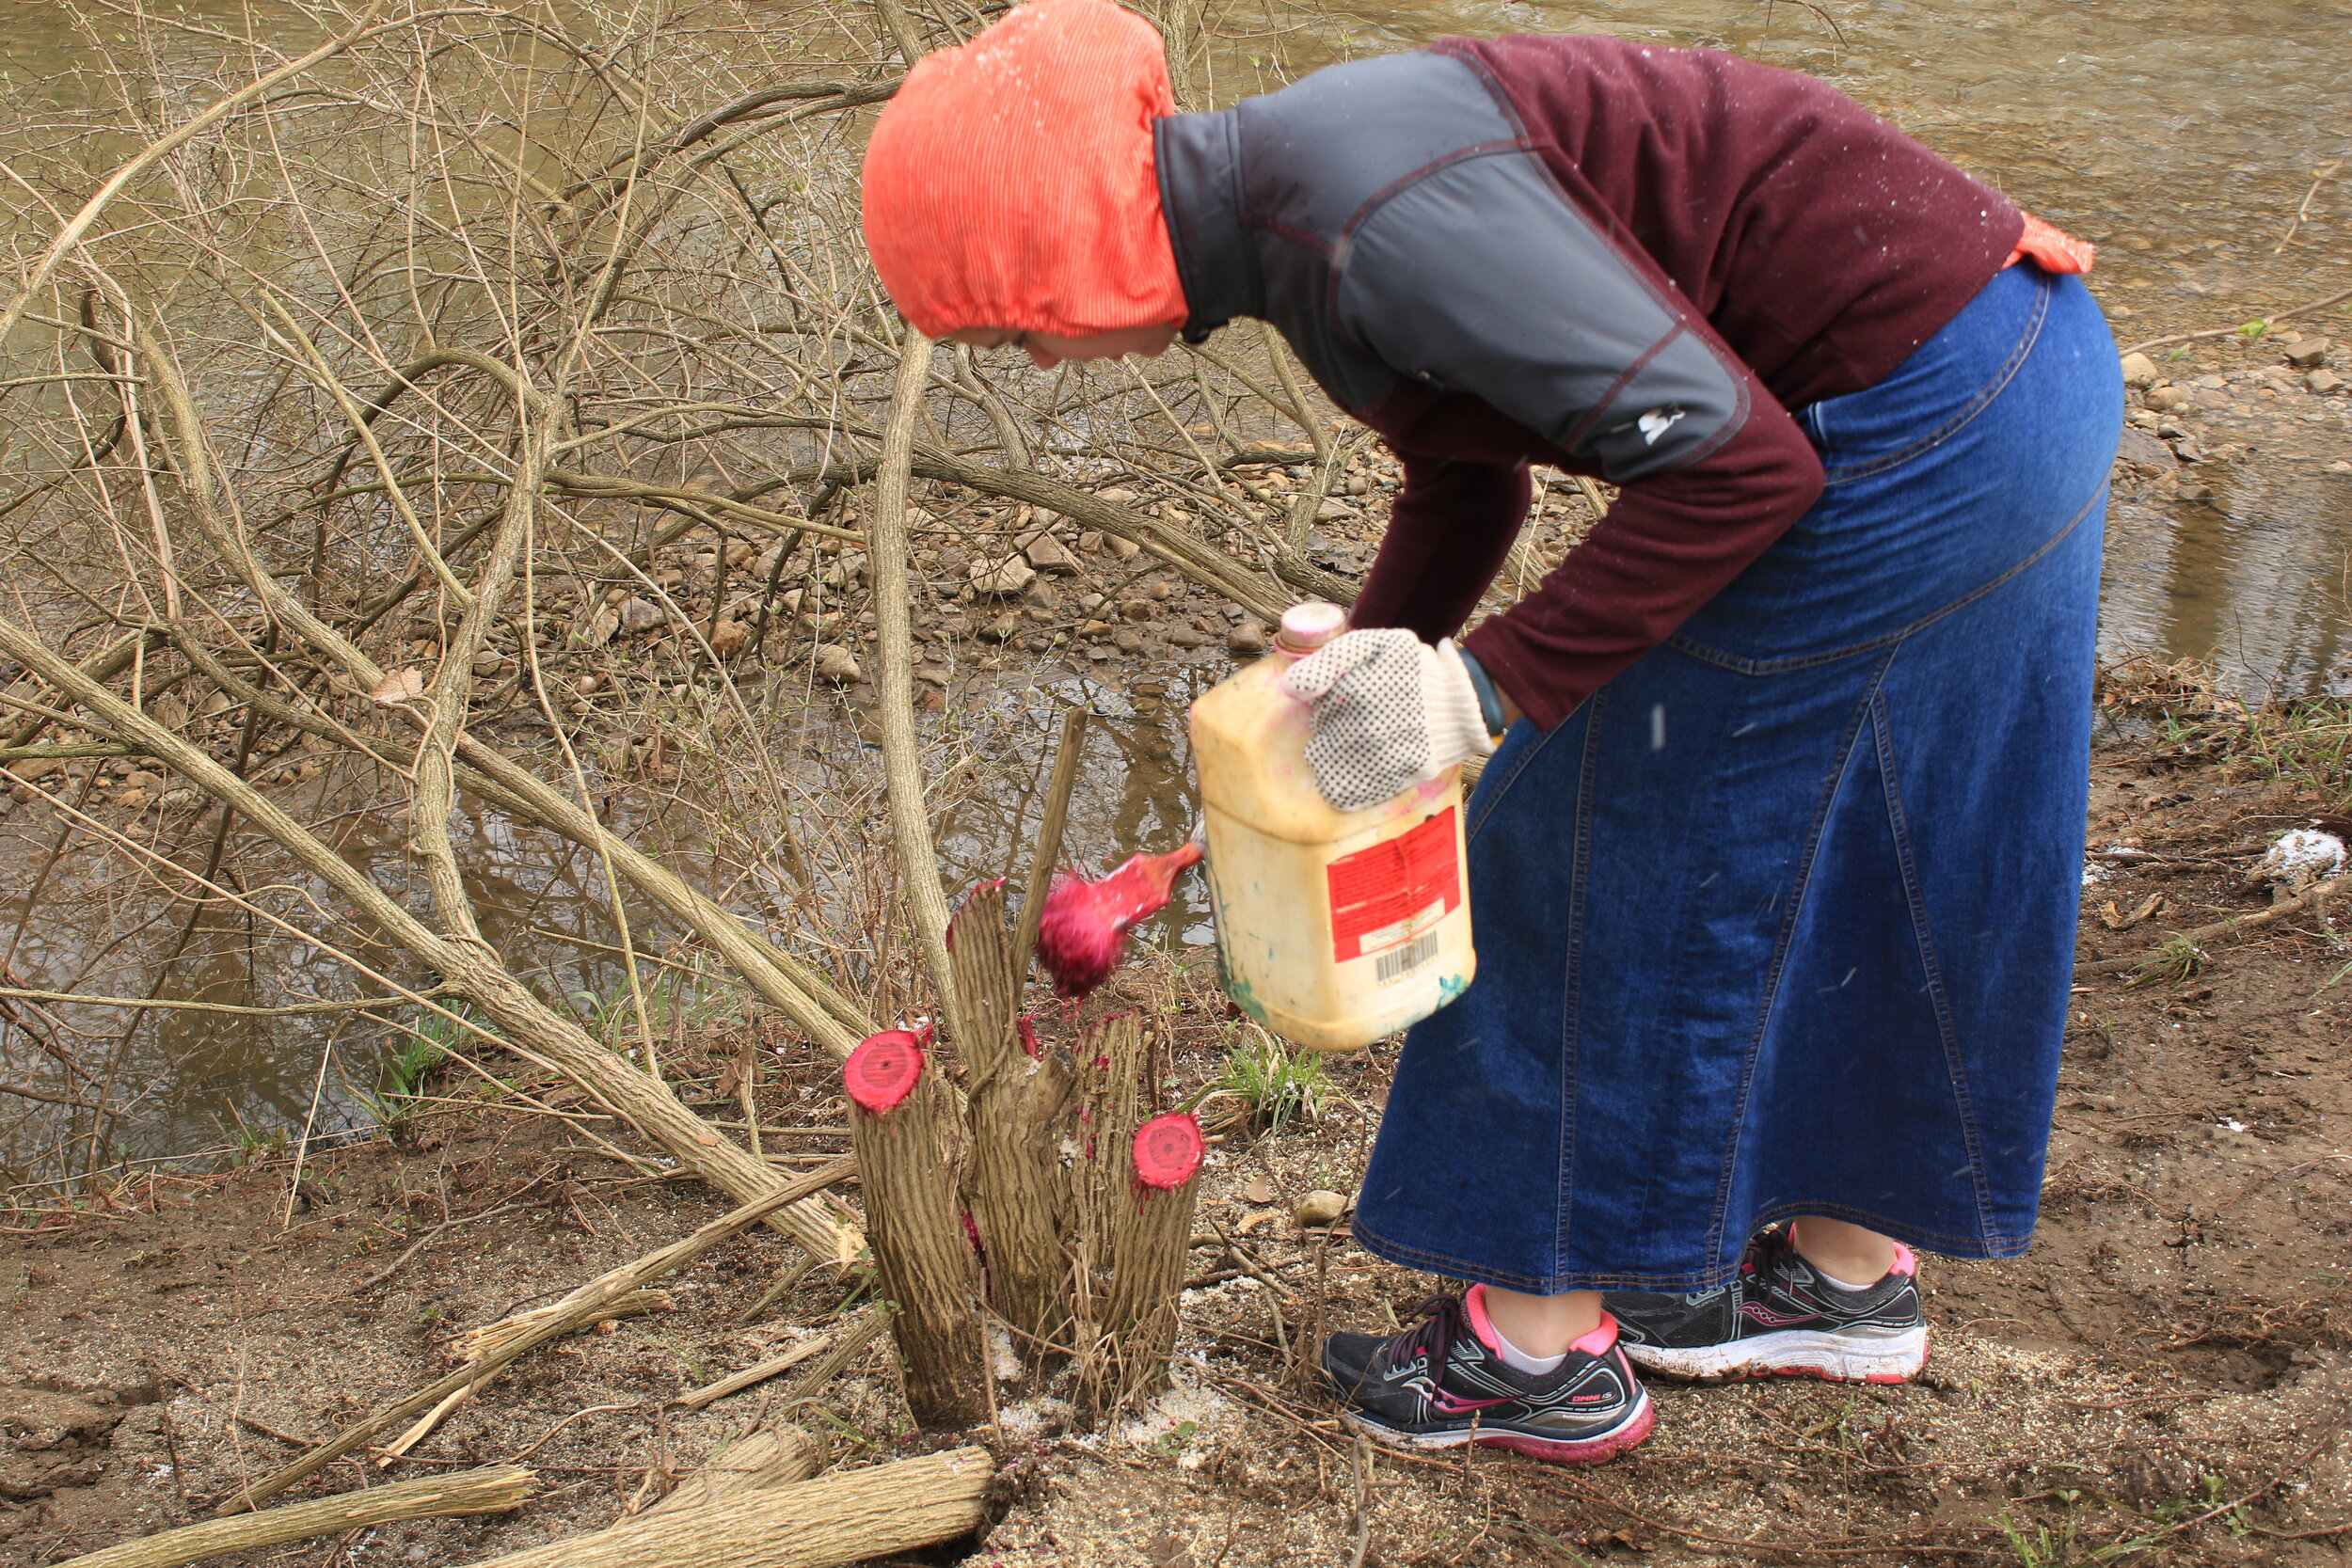 Treating the stumps of invasive Bush Honeysuckle with herbicide.